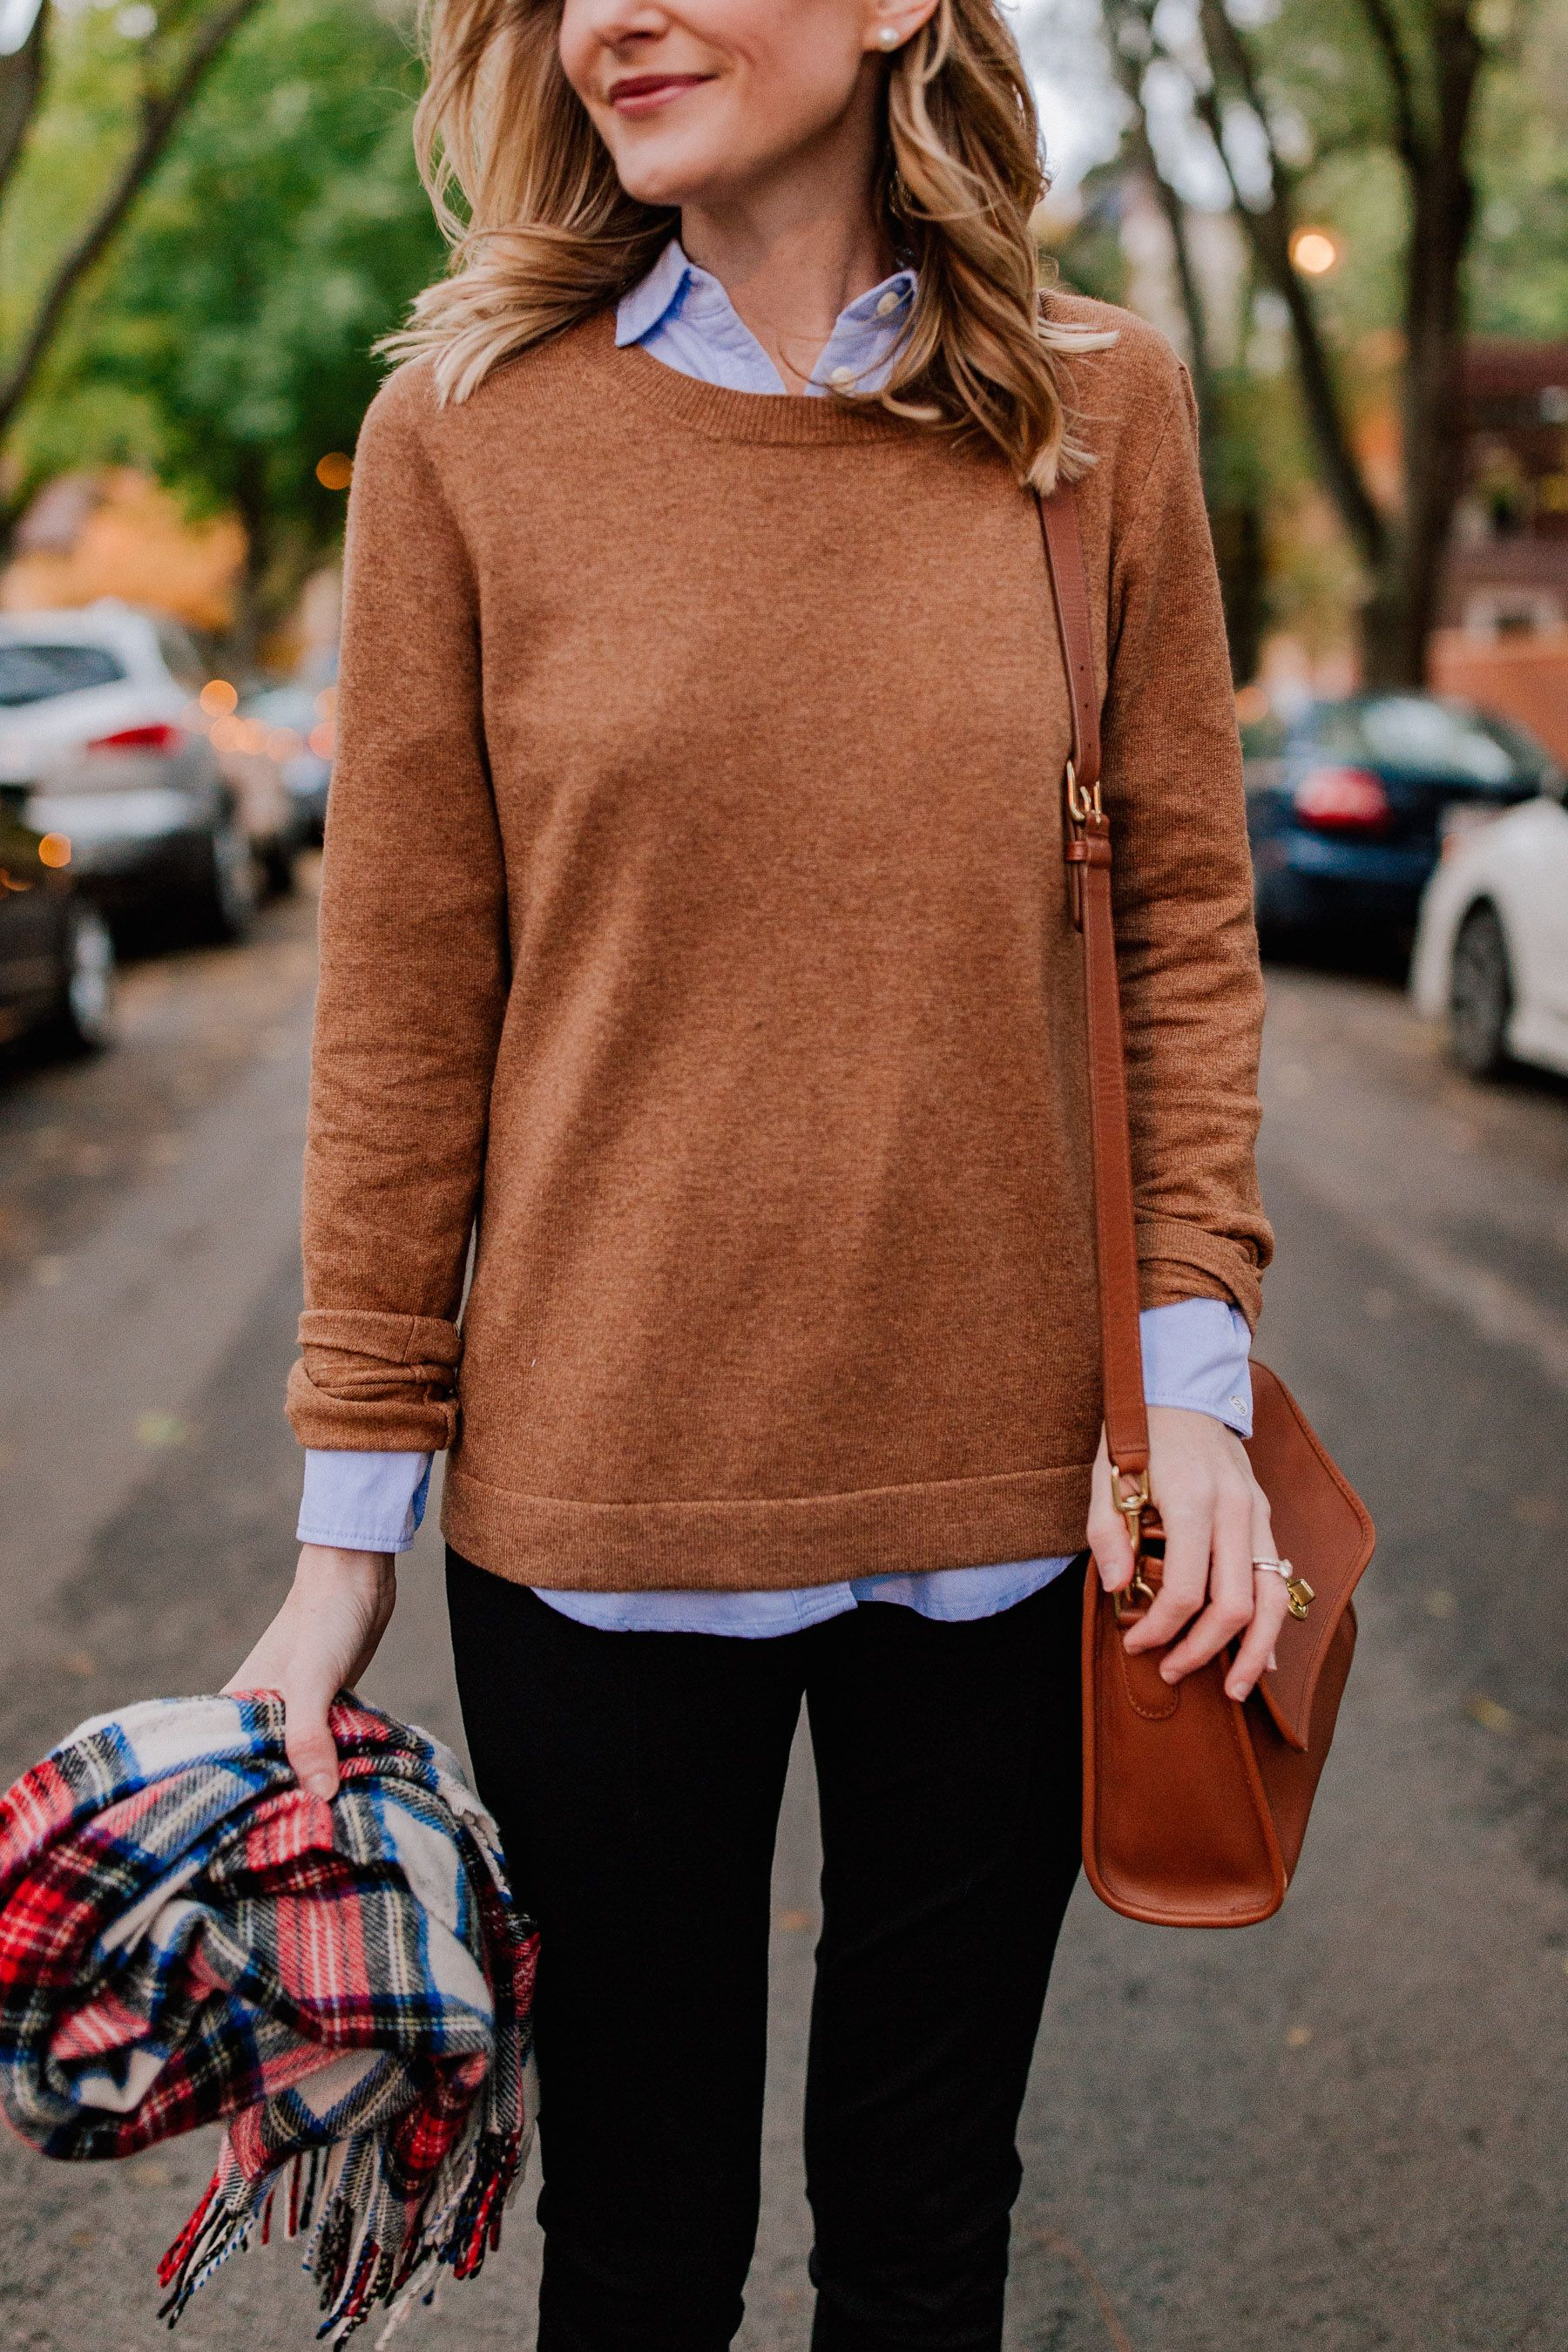 Camel Sweater & Preppy Fall Outfits #falloutfitsforwork